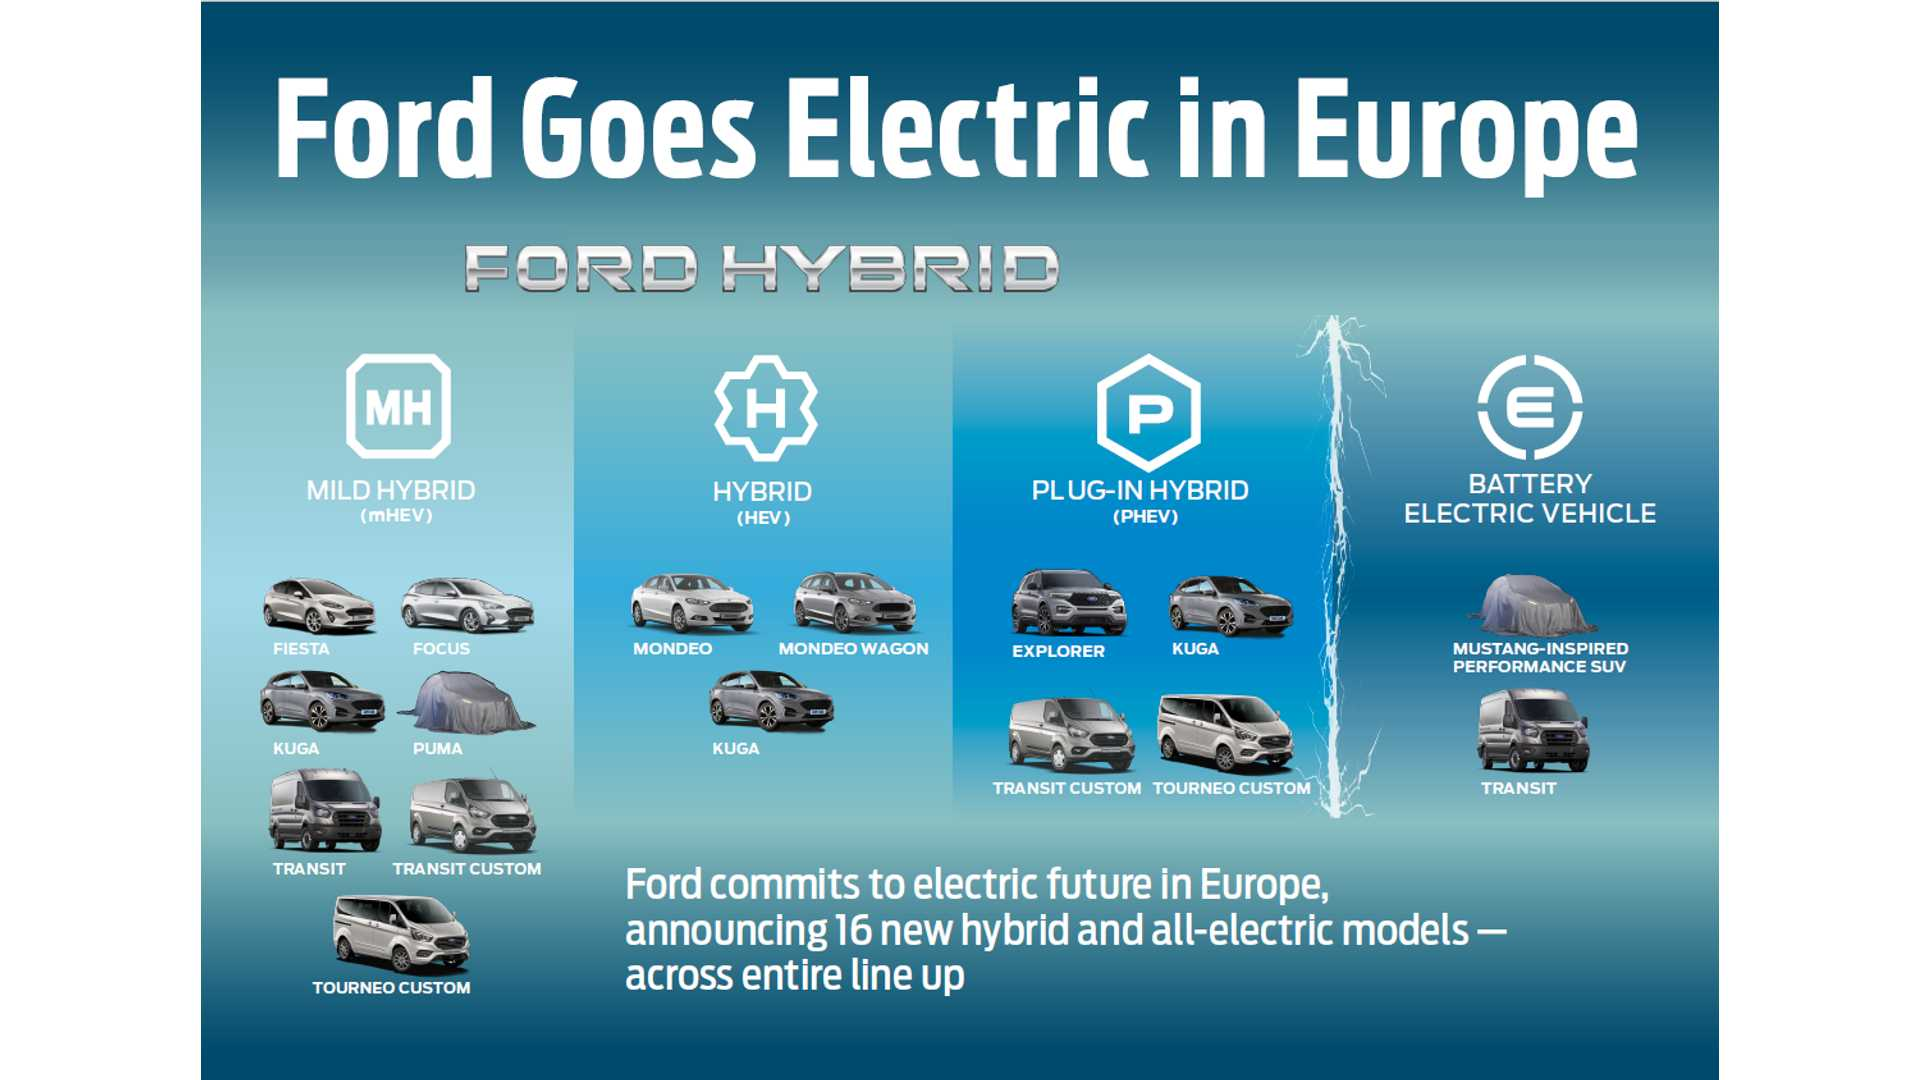 Ford Goes Electric In Europe Bold Electrification Plans Announced